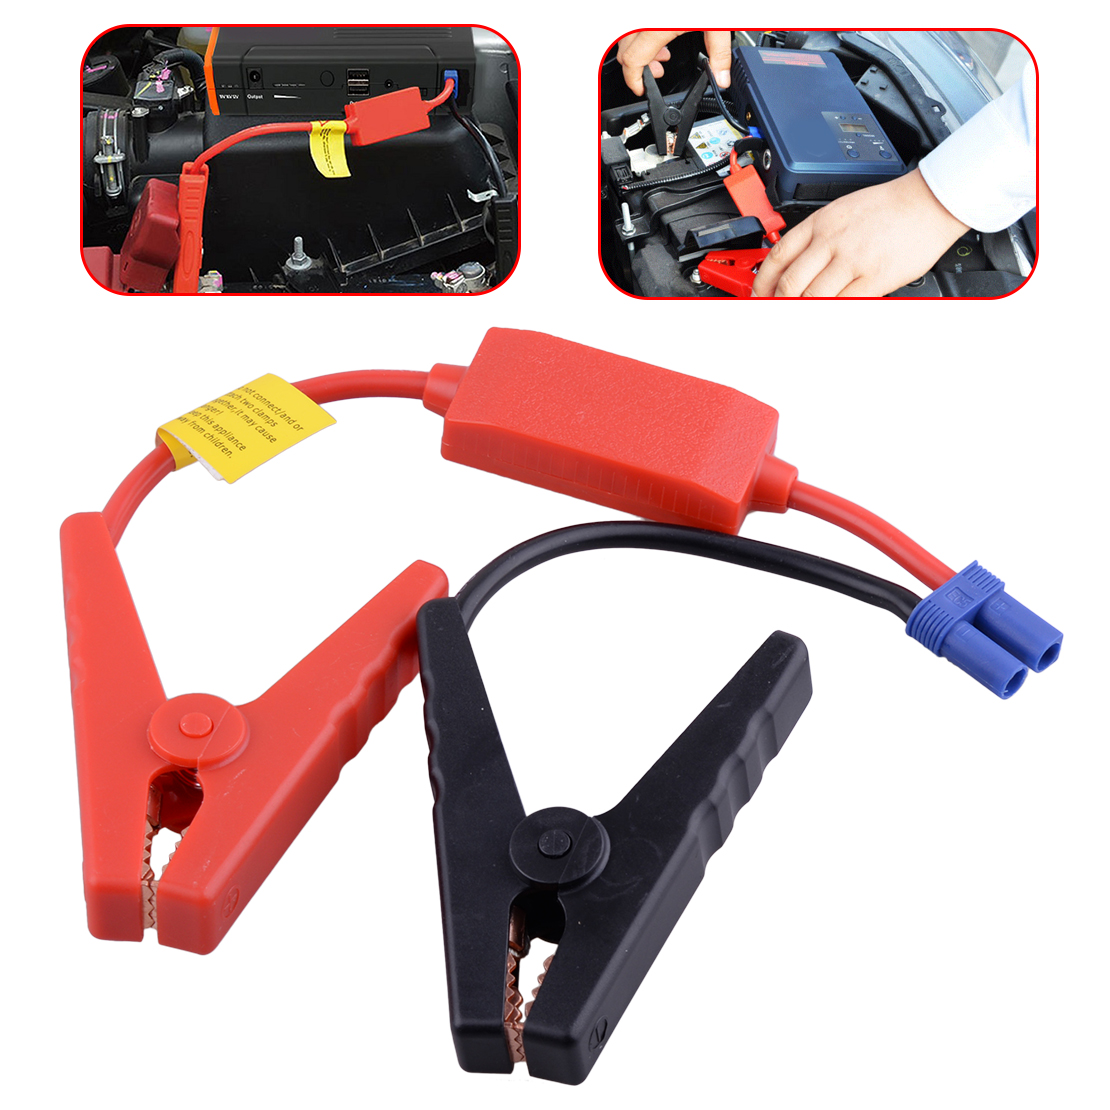 CITALL Car EC5 Plastic Shell Booster Cable Alligator Clamp Clip Connector Battery Jumper Jump Starter Plug